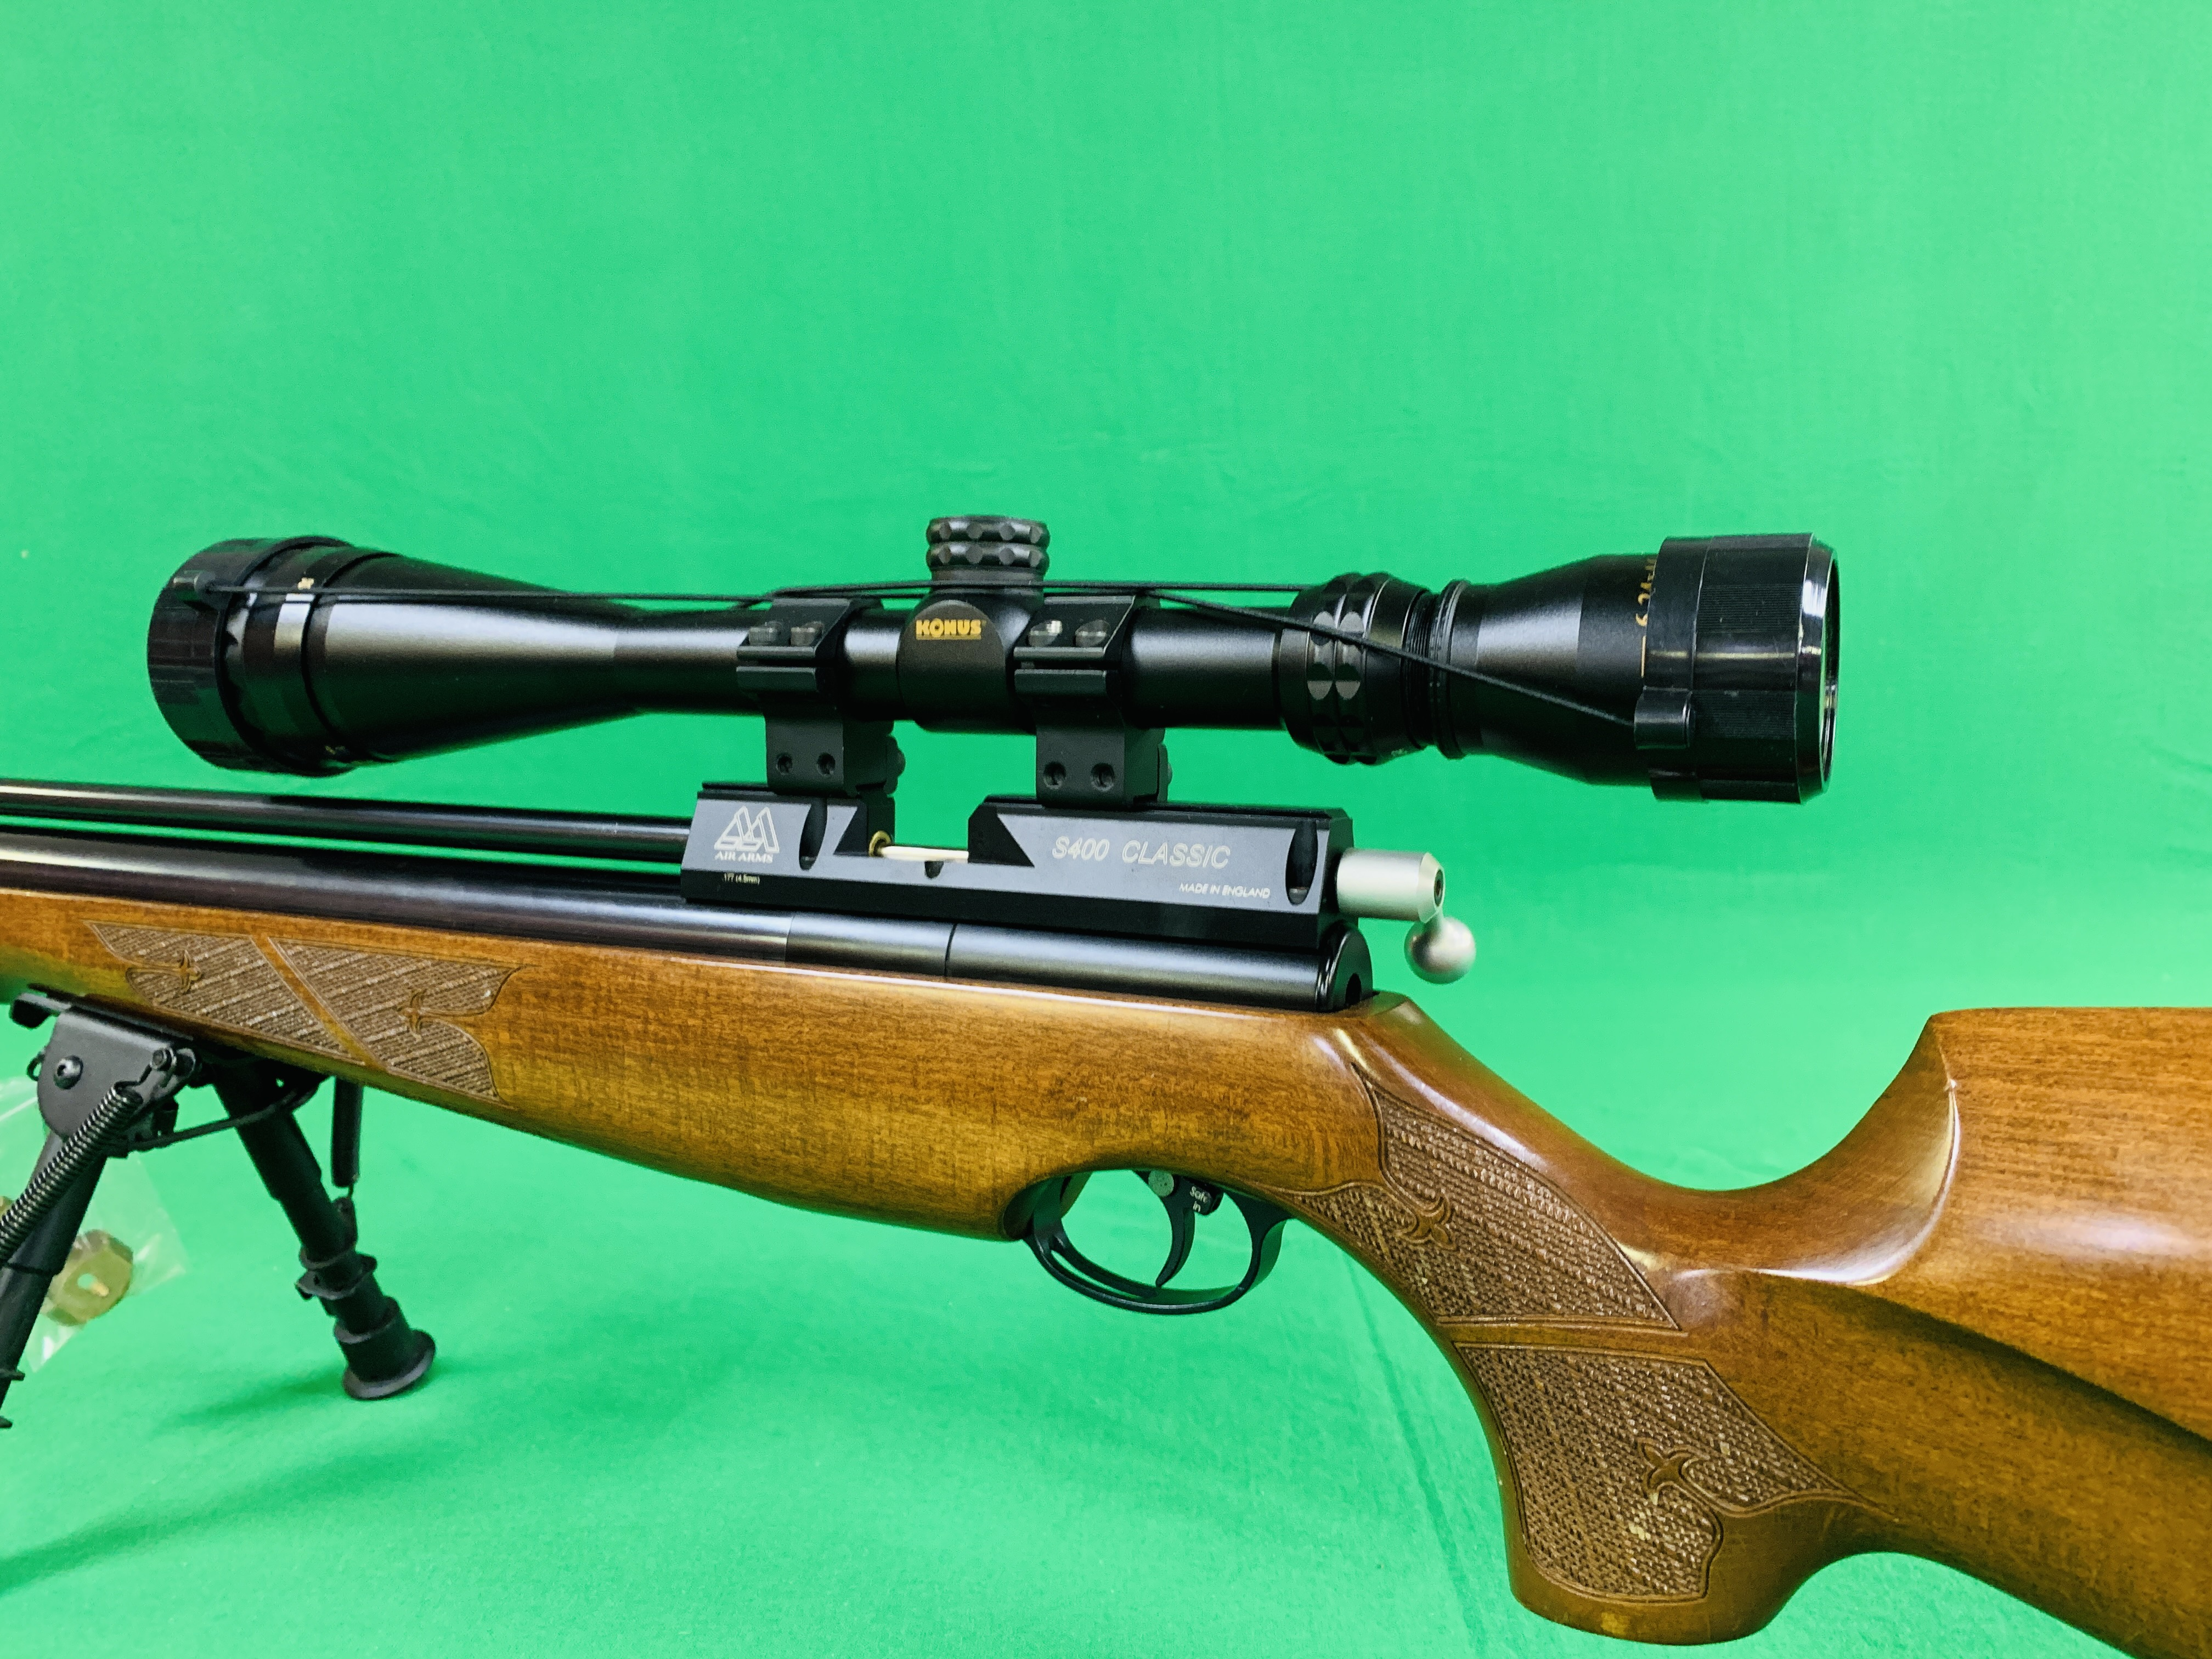 AIR ARMS S400 CLASSIC .177 BOLT ACTION PCP AIR RIFLE FITTED WITH BONUS 6. - Image 4 of 17